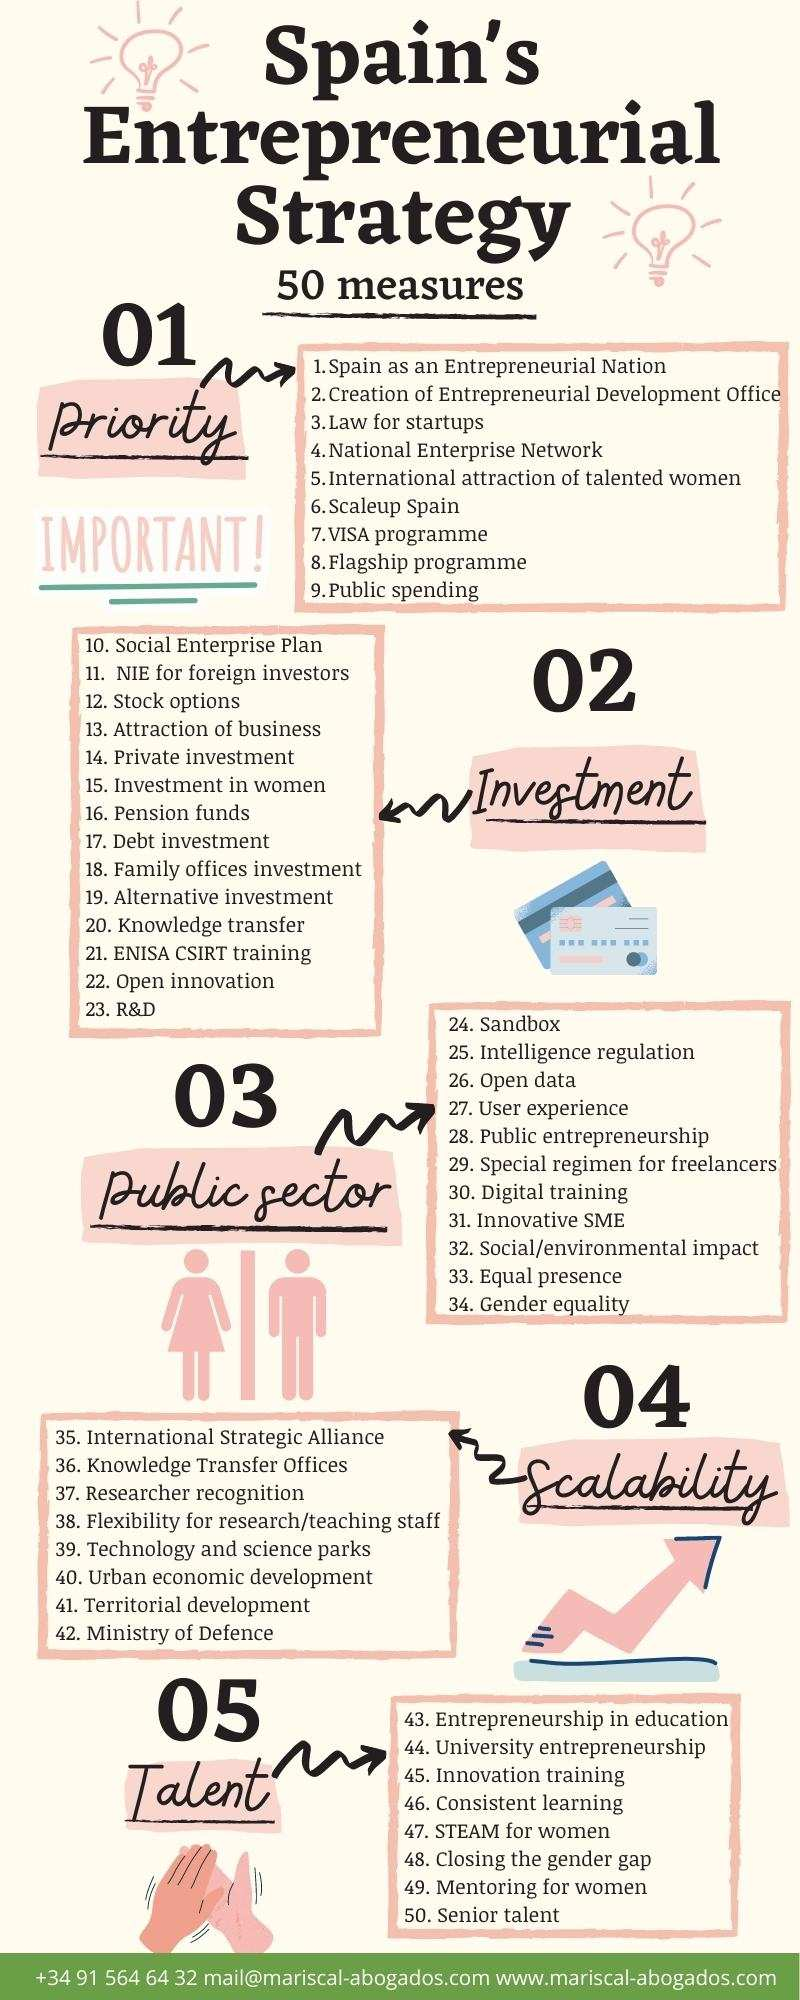 The 50 measures of Spain's Entrepreneurial Strategy